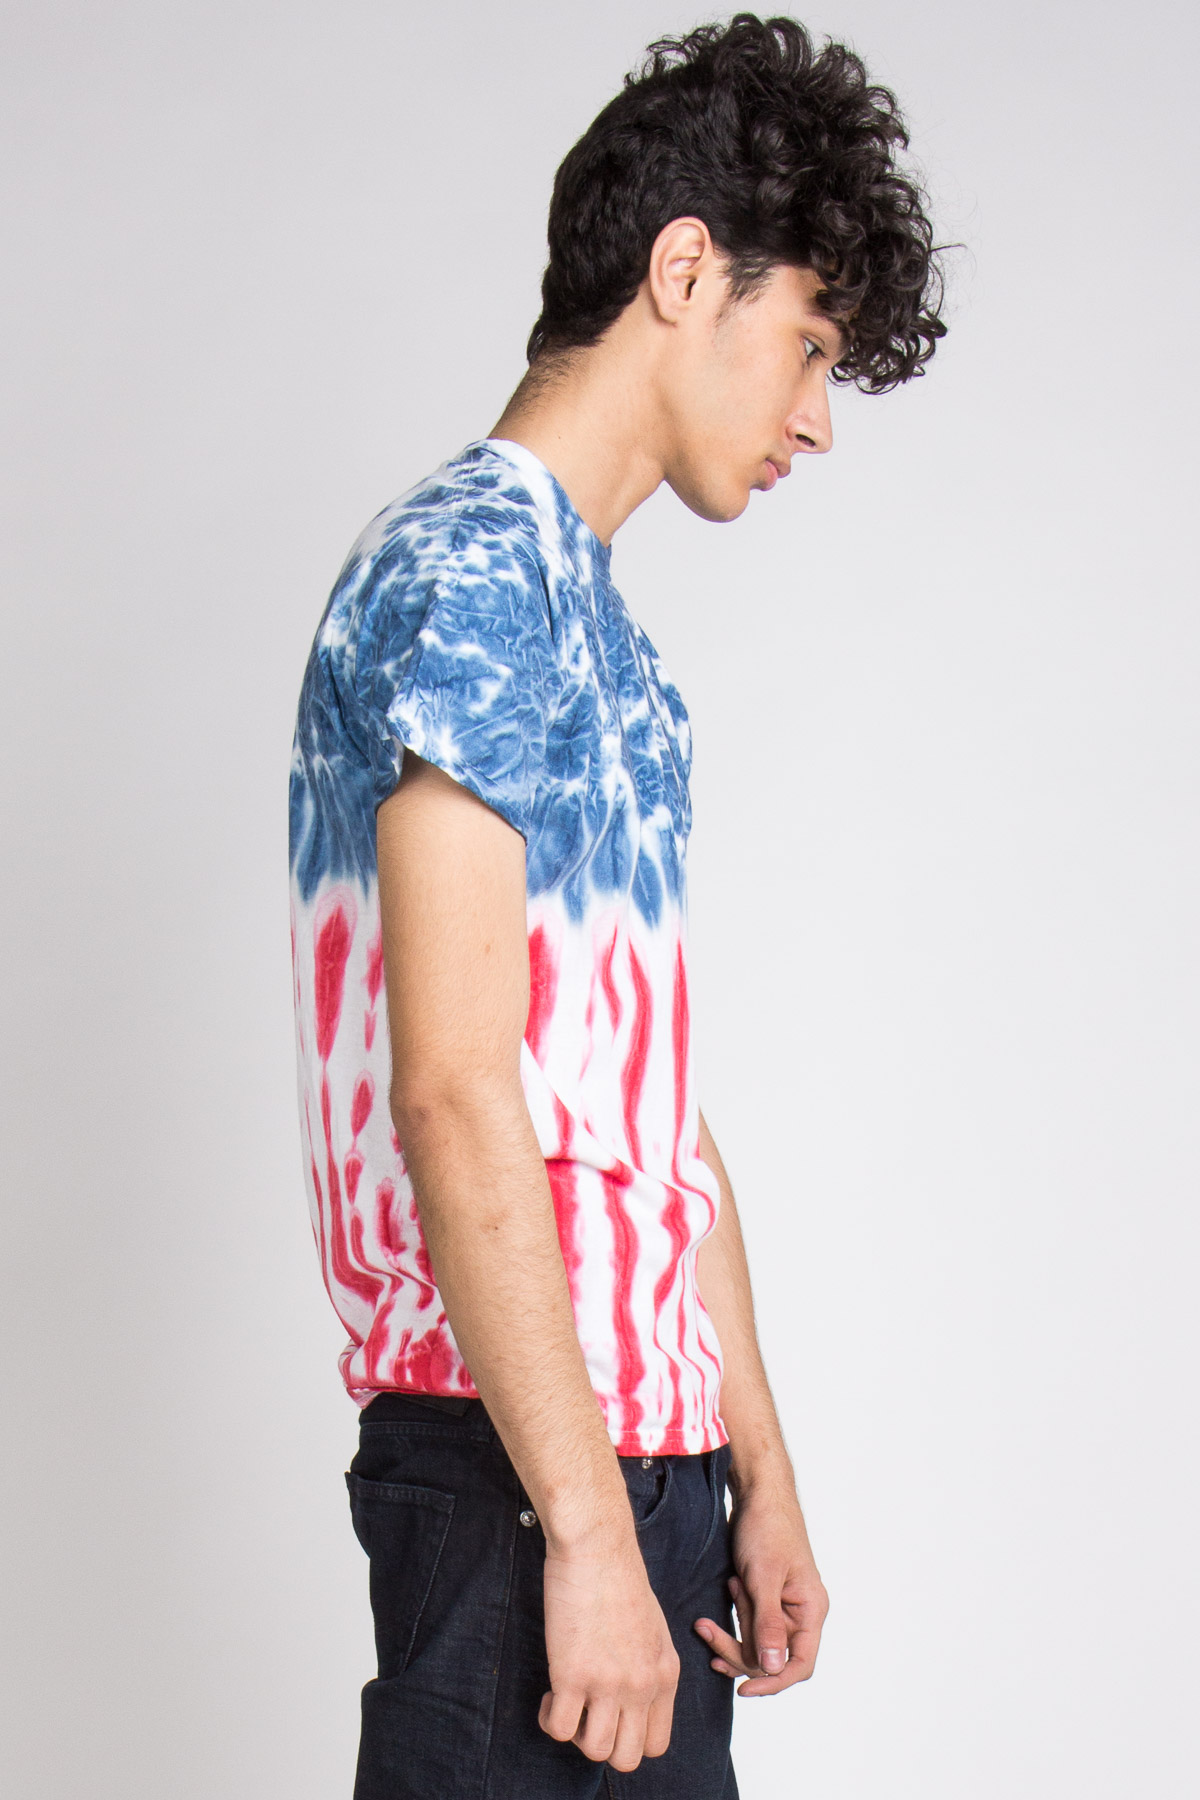 half blue red and white tie dye tee shirt